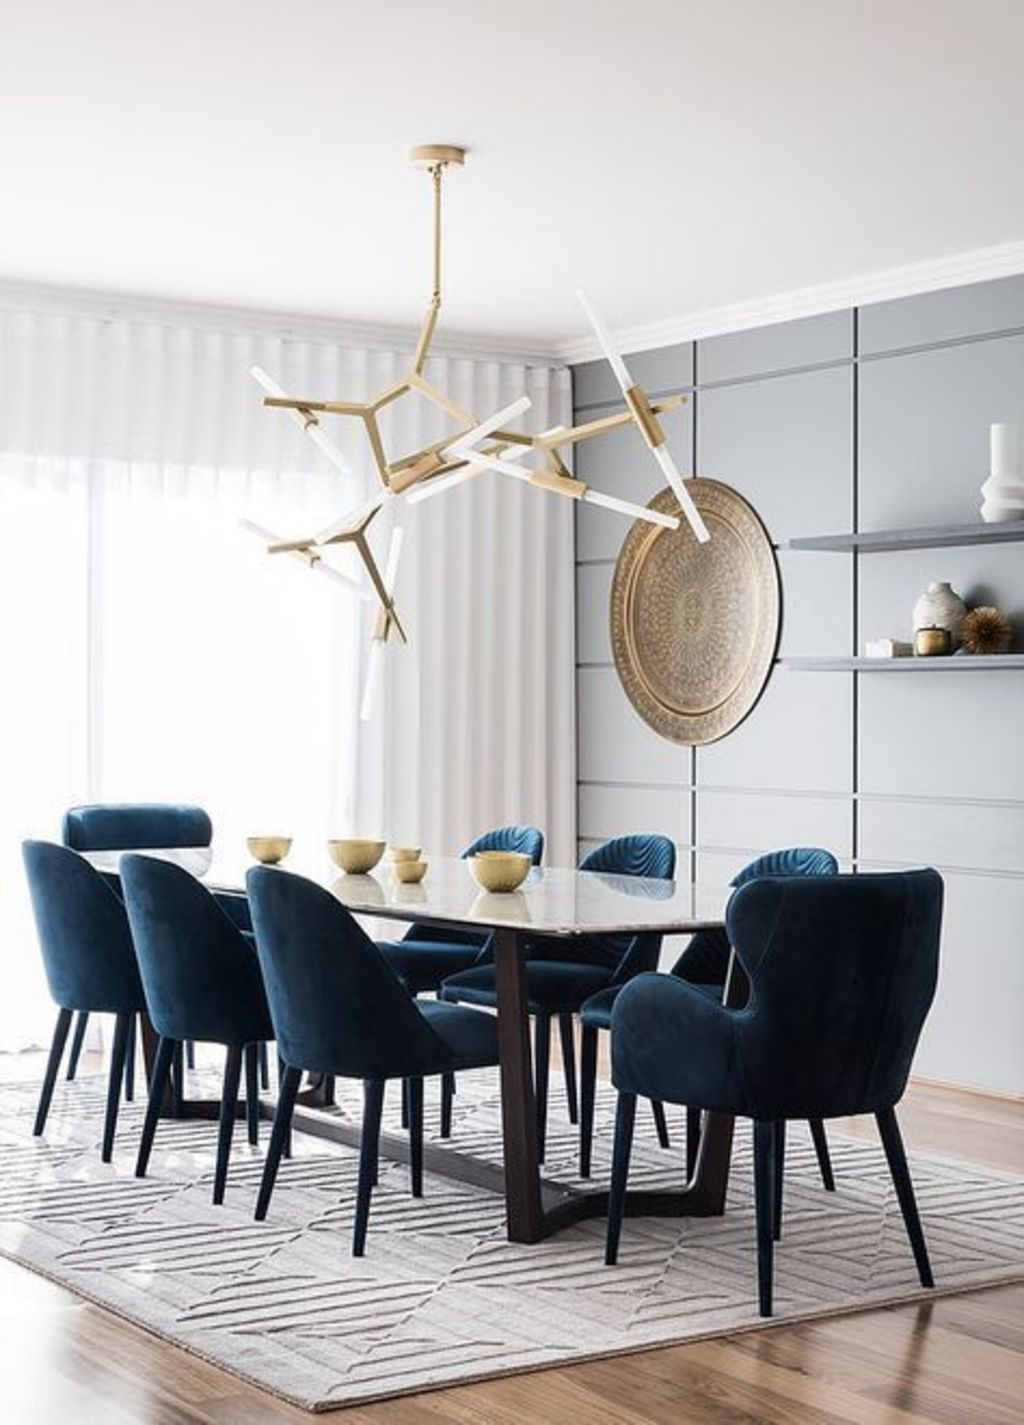 https://elonahome.com/wp-content/uploads/2019/01/Trending-dining-chair-designs-that-look-so-simple-but-also-elegant-and-comfortable-Part-25.jpg